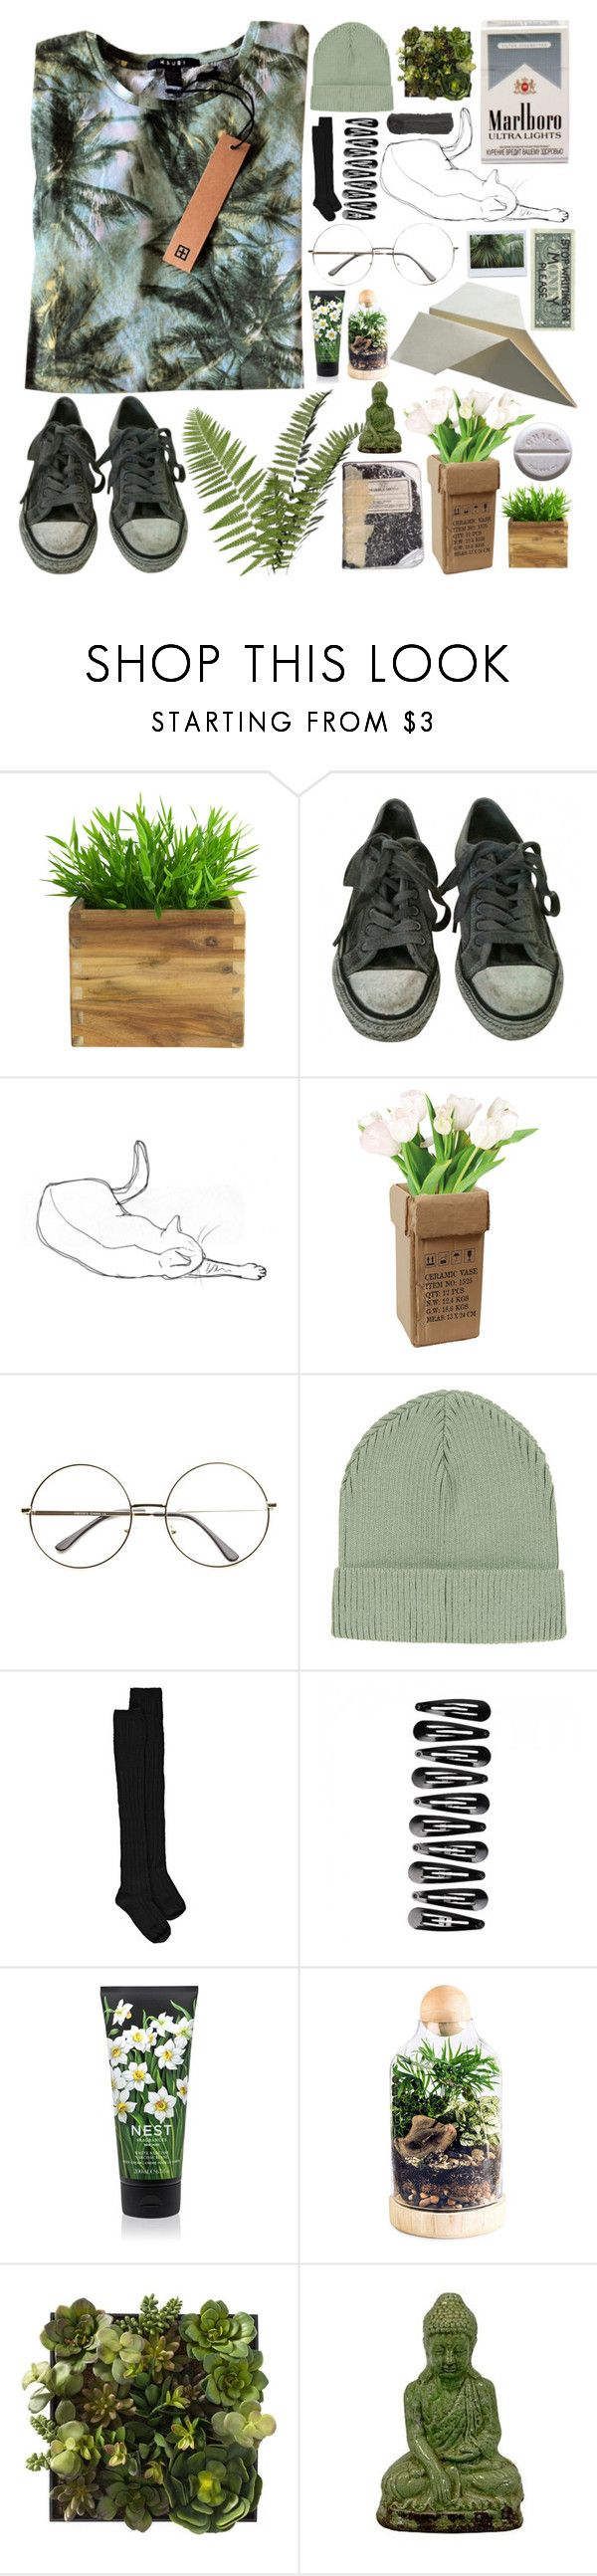 """""""Uncomfortable with sunshine"""" by ftrees ❤ liked on Polyvore featuring KEEP ME, AllSaints, Topshop, Boohoo, Nest Fragrances, Plane and Urban Trends Collection"""